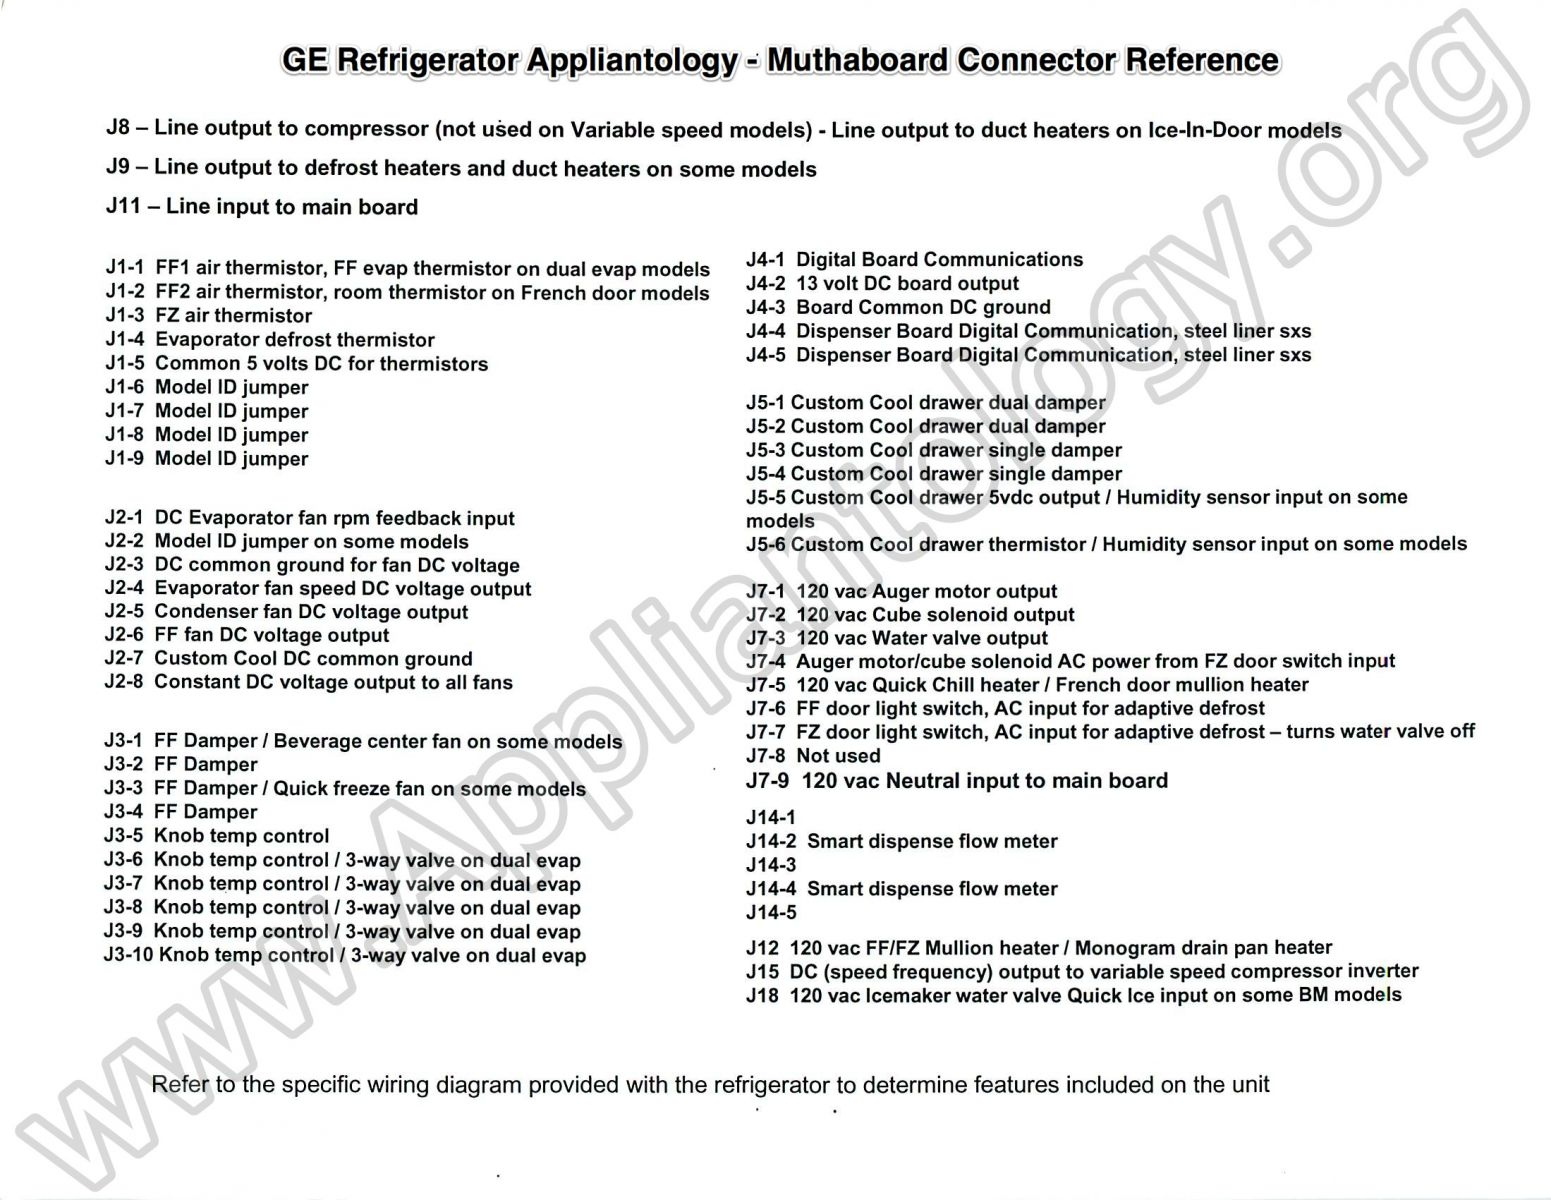 GE Refrigerator Muthaboard - Connector Reference List